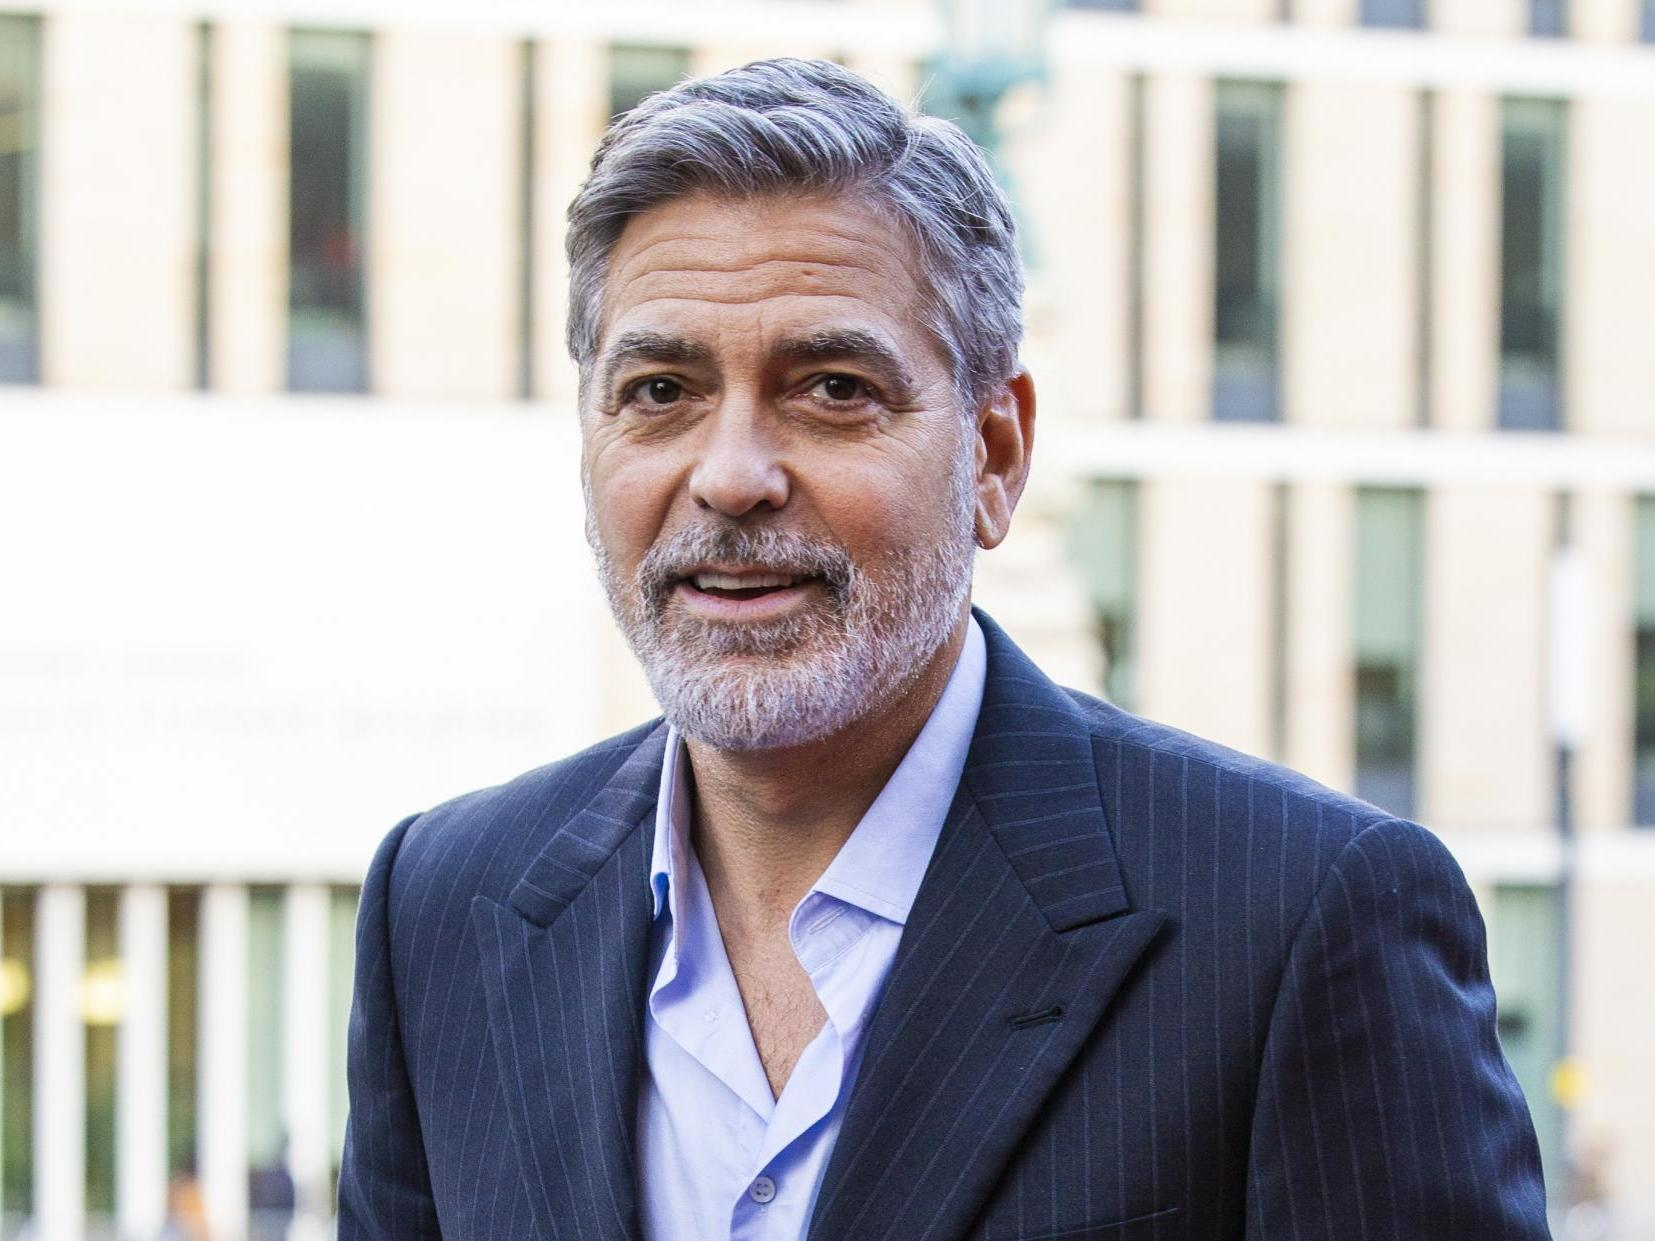 George Clooney says racism is America's pandemic: 'It infects all of us'